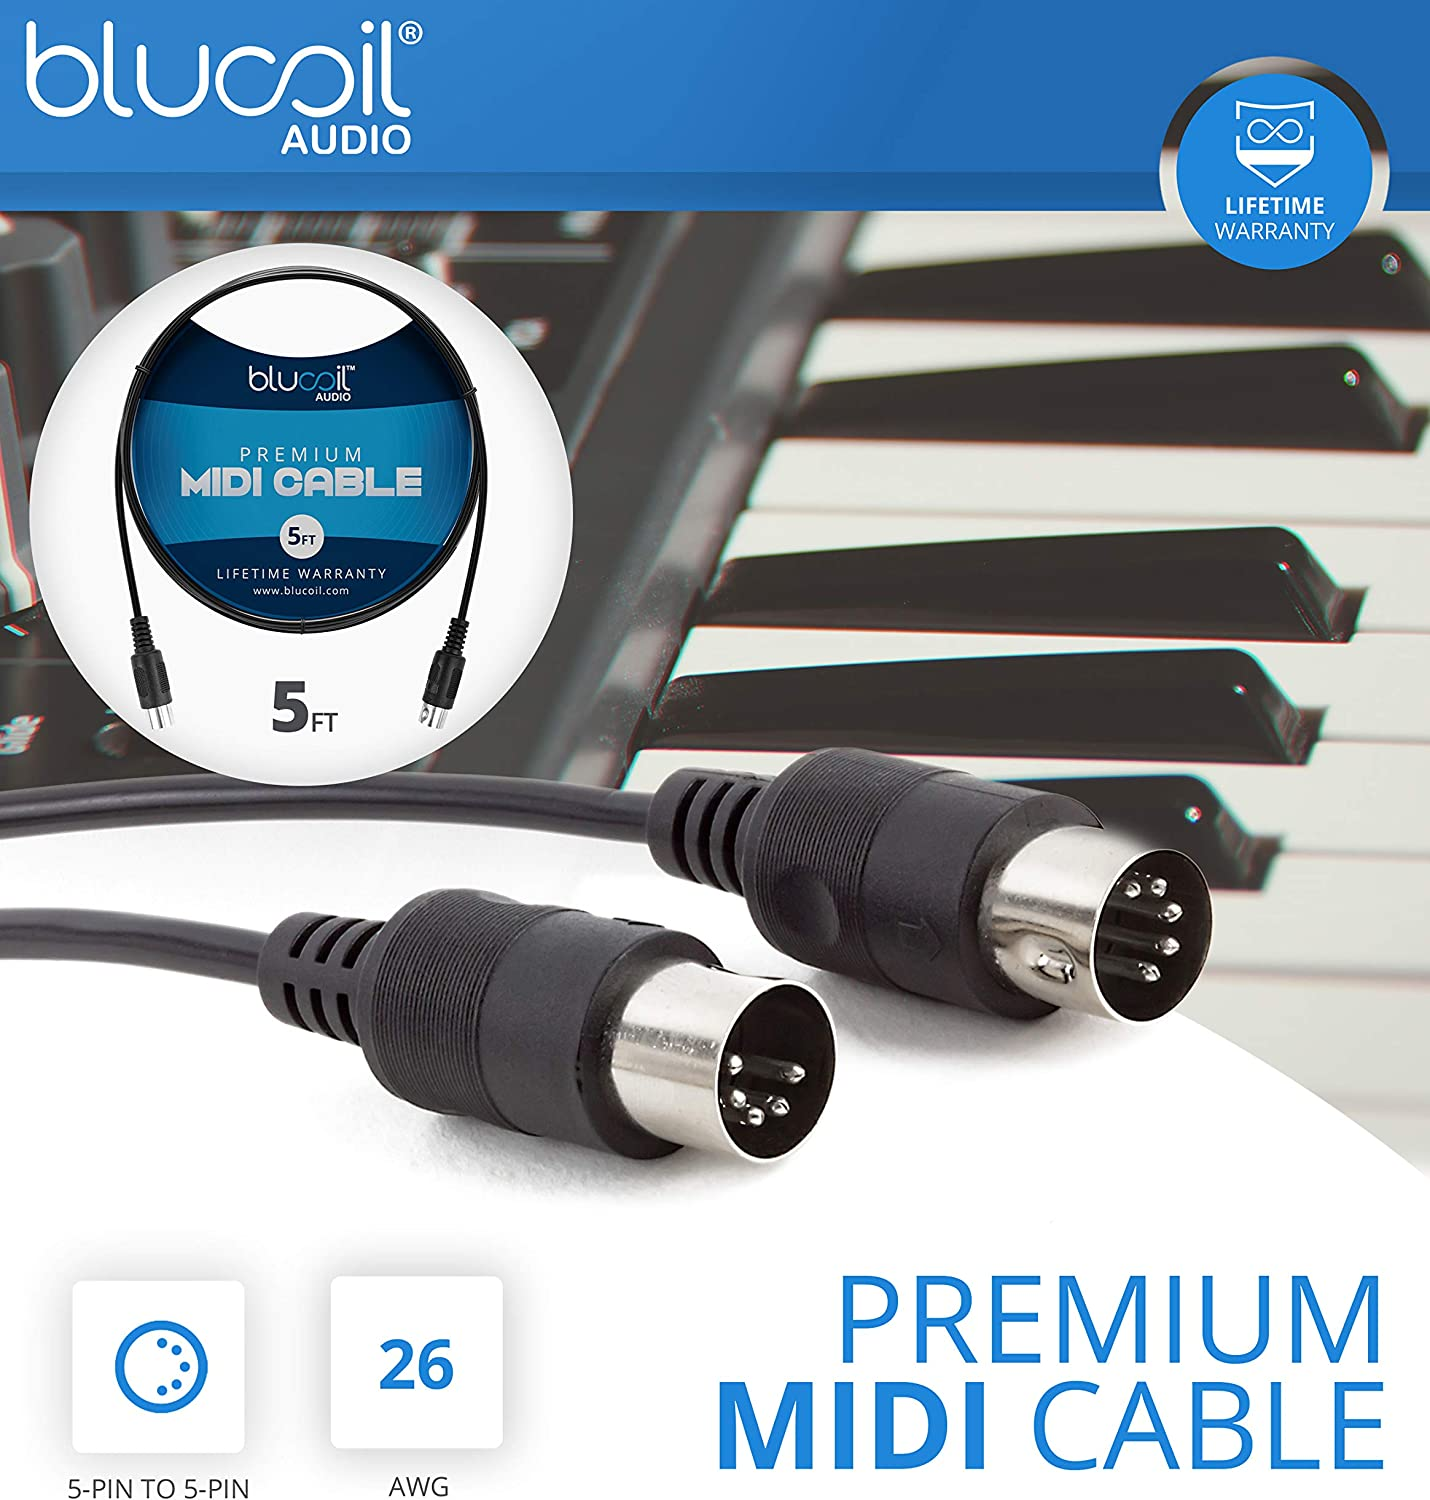 and 4-Pack of Celluloid Guitar Picks 5-FT MIDI Cable Voodoo Lab Control Switcher MIDI Amplifier Channel Switcher Bundle with Blucoil 2-Pack of 10-FT Straight Instrument Cables 1//4in